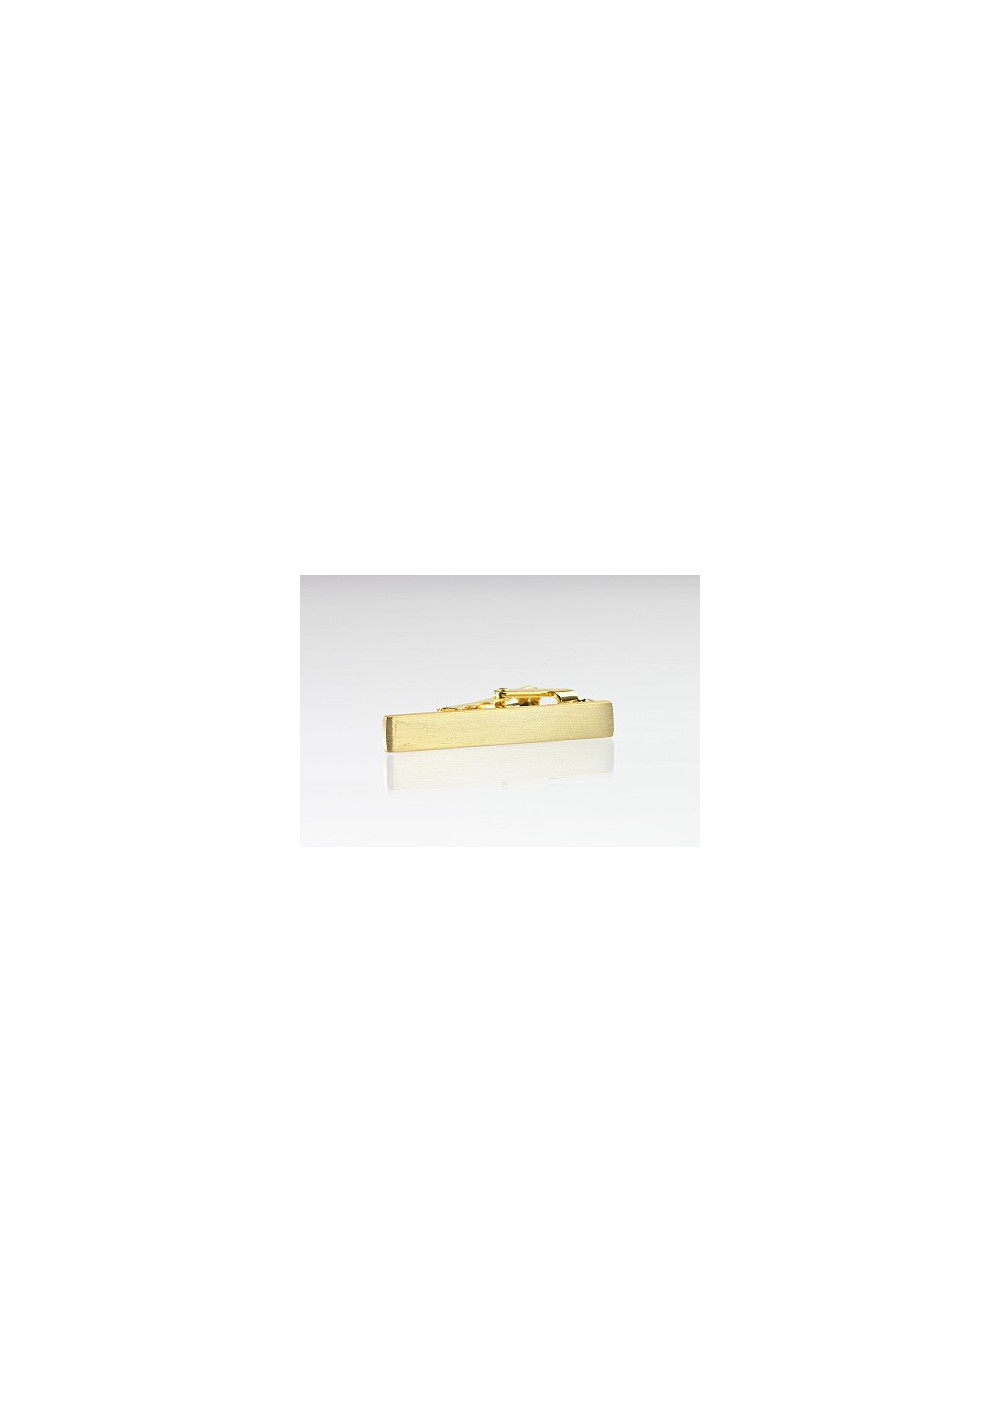 Brass Tie Bar in Narrow Size